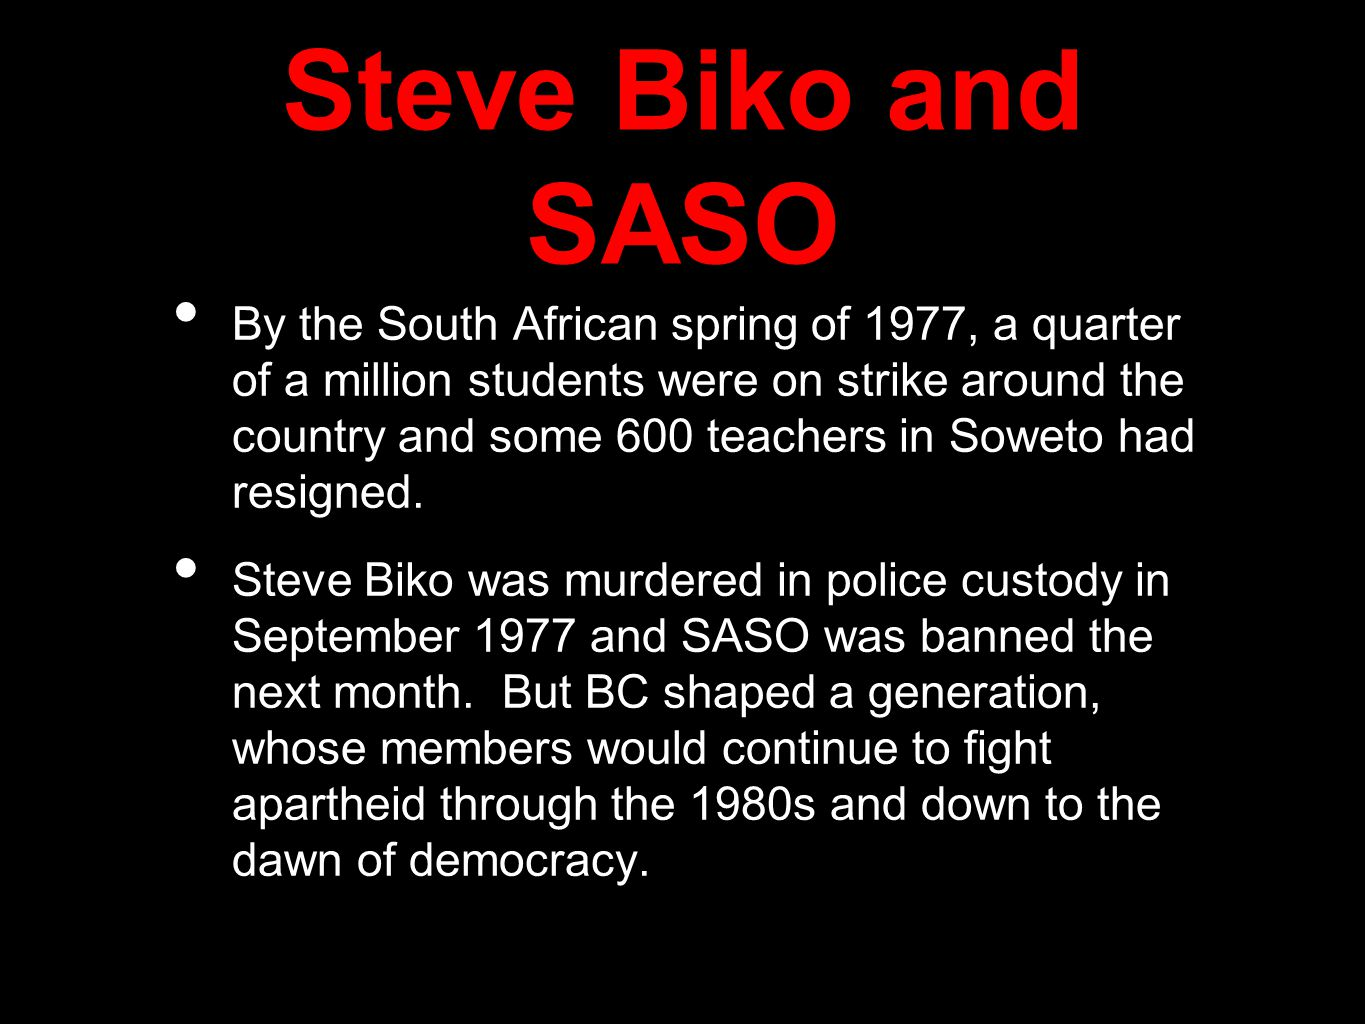 Steve Biko and SASO By the South African spring of 1977, a quarter of a million students were on strike around the country and some 600 teachers in Soweto had resigned.